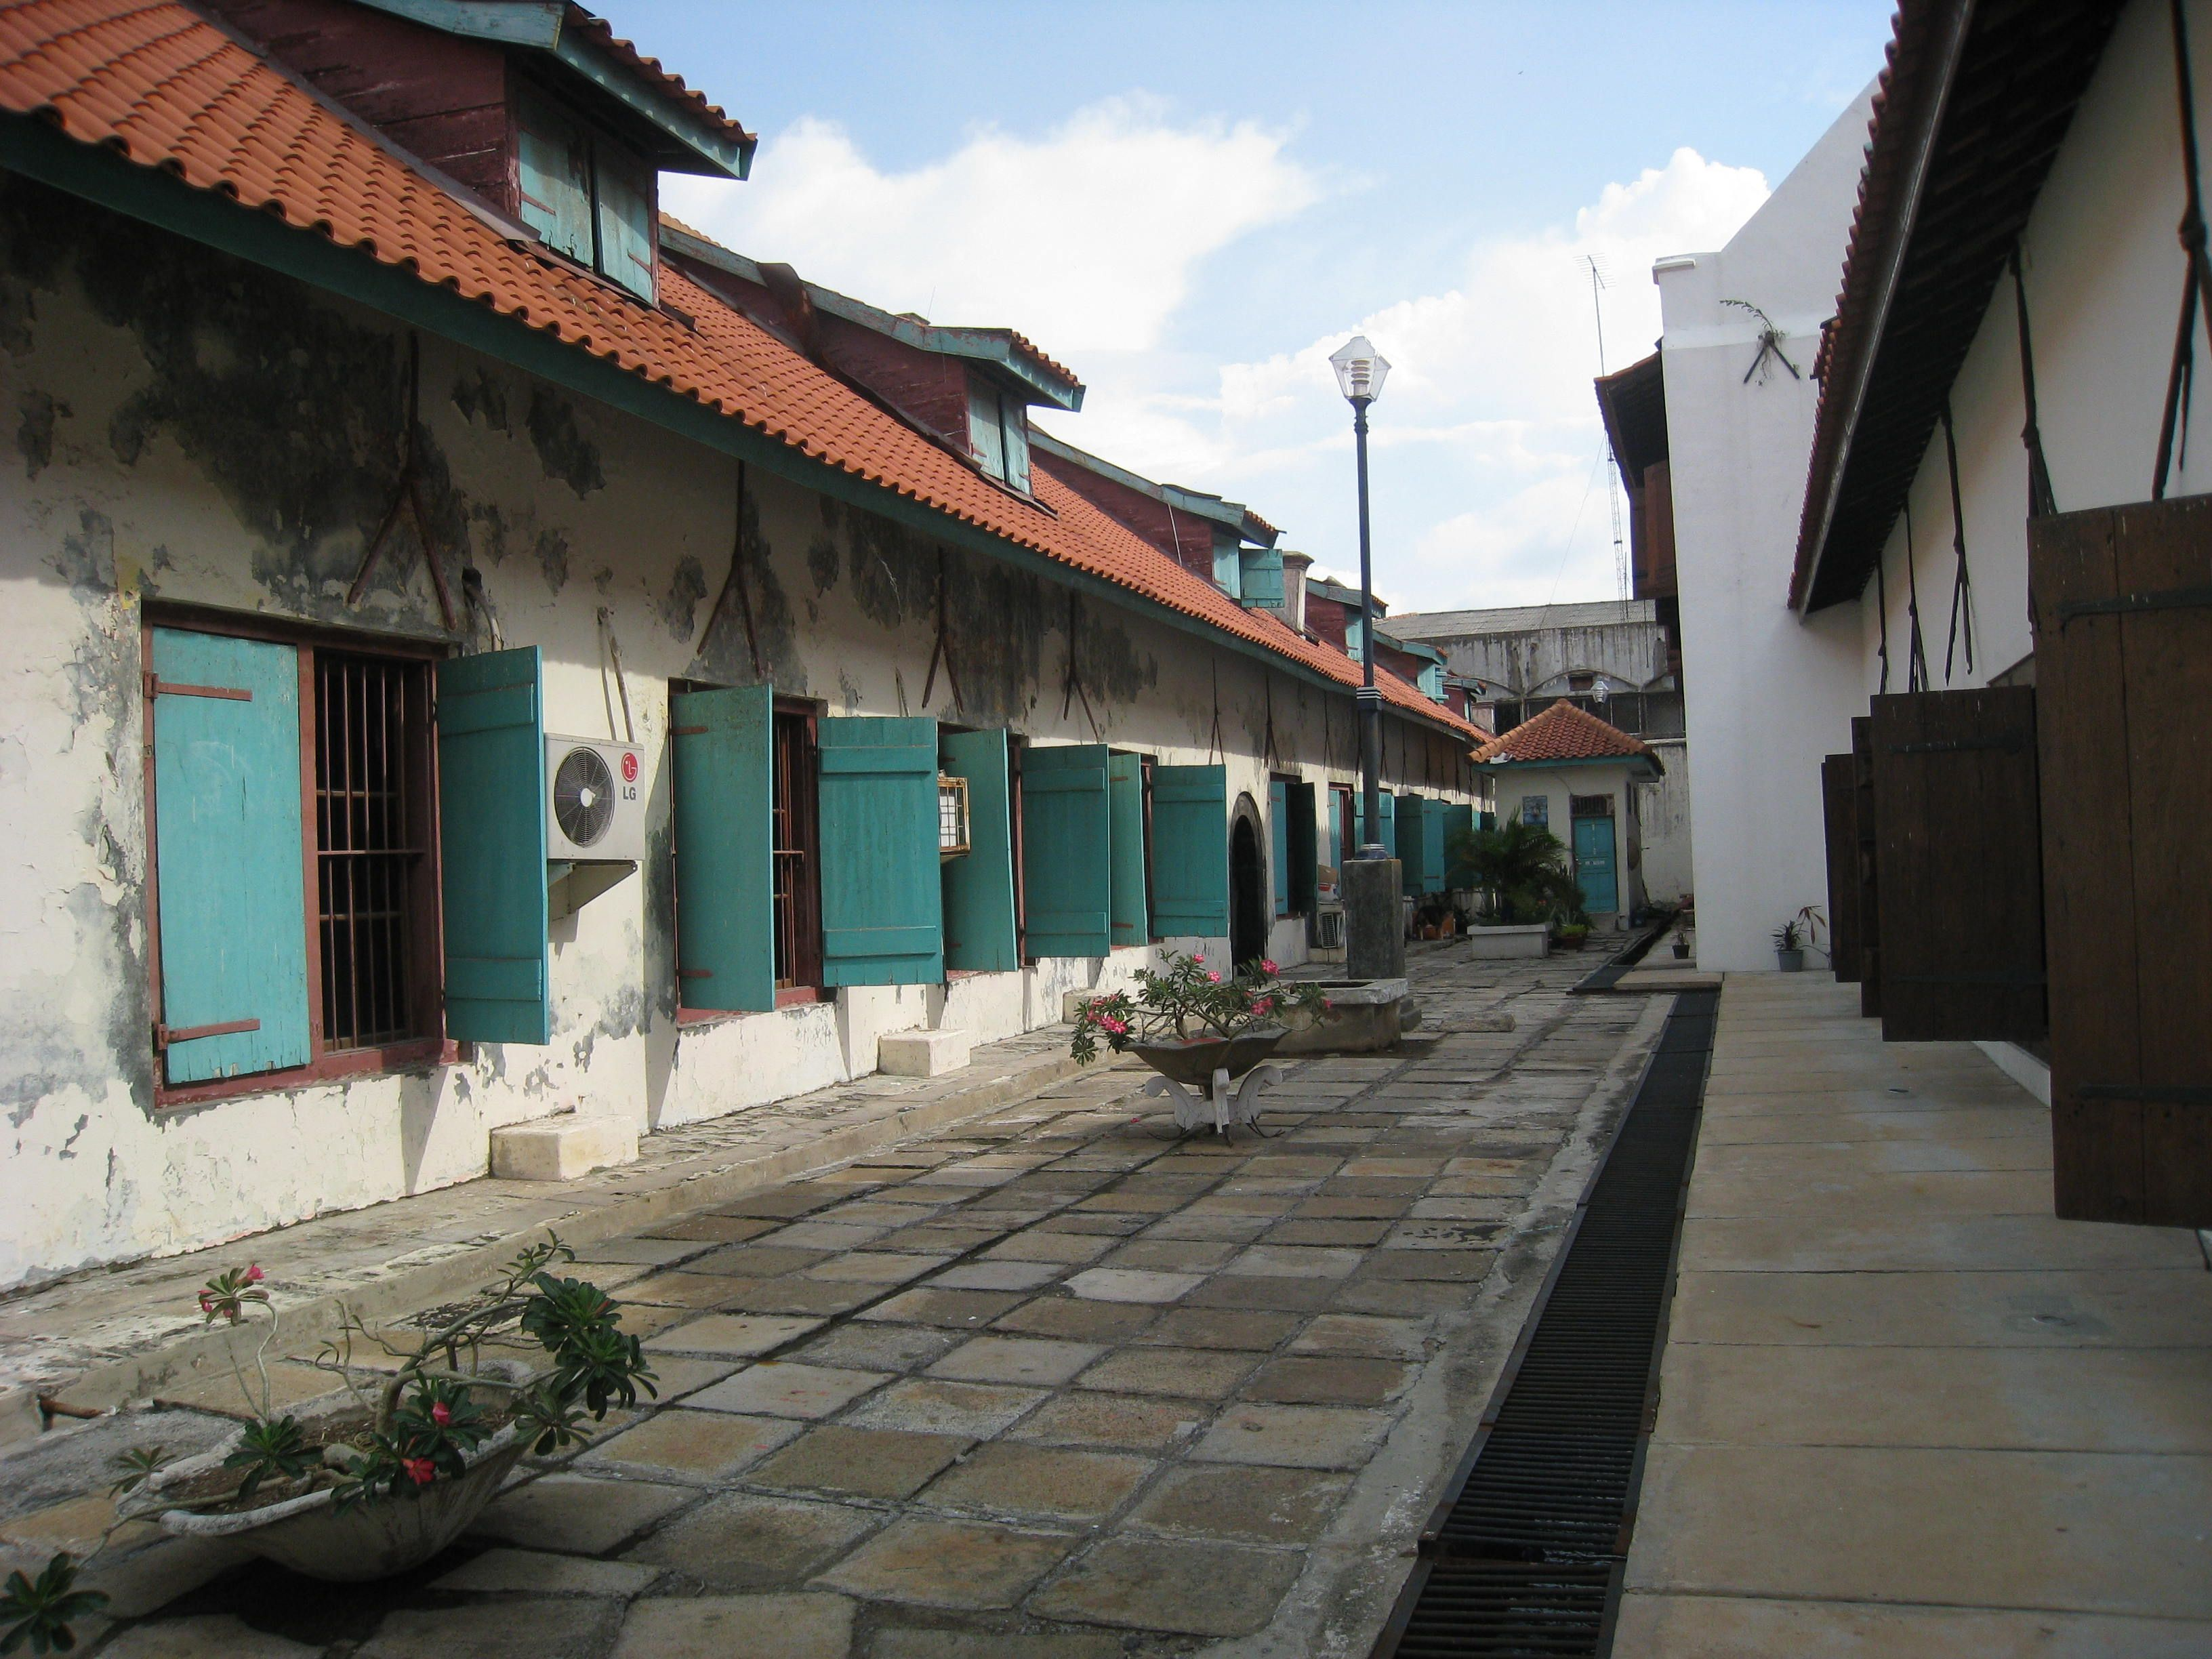 Dutch colonial architecture dating to the 17thcentury in